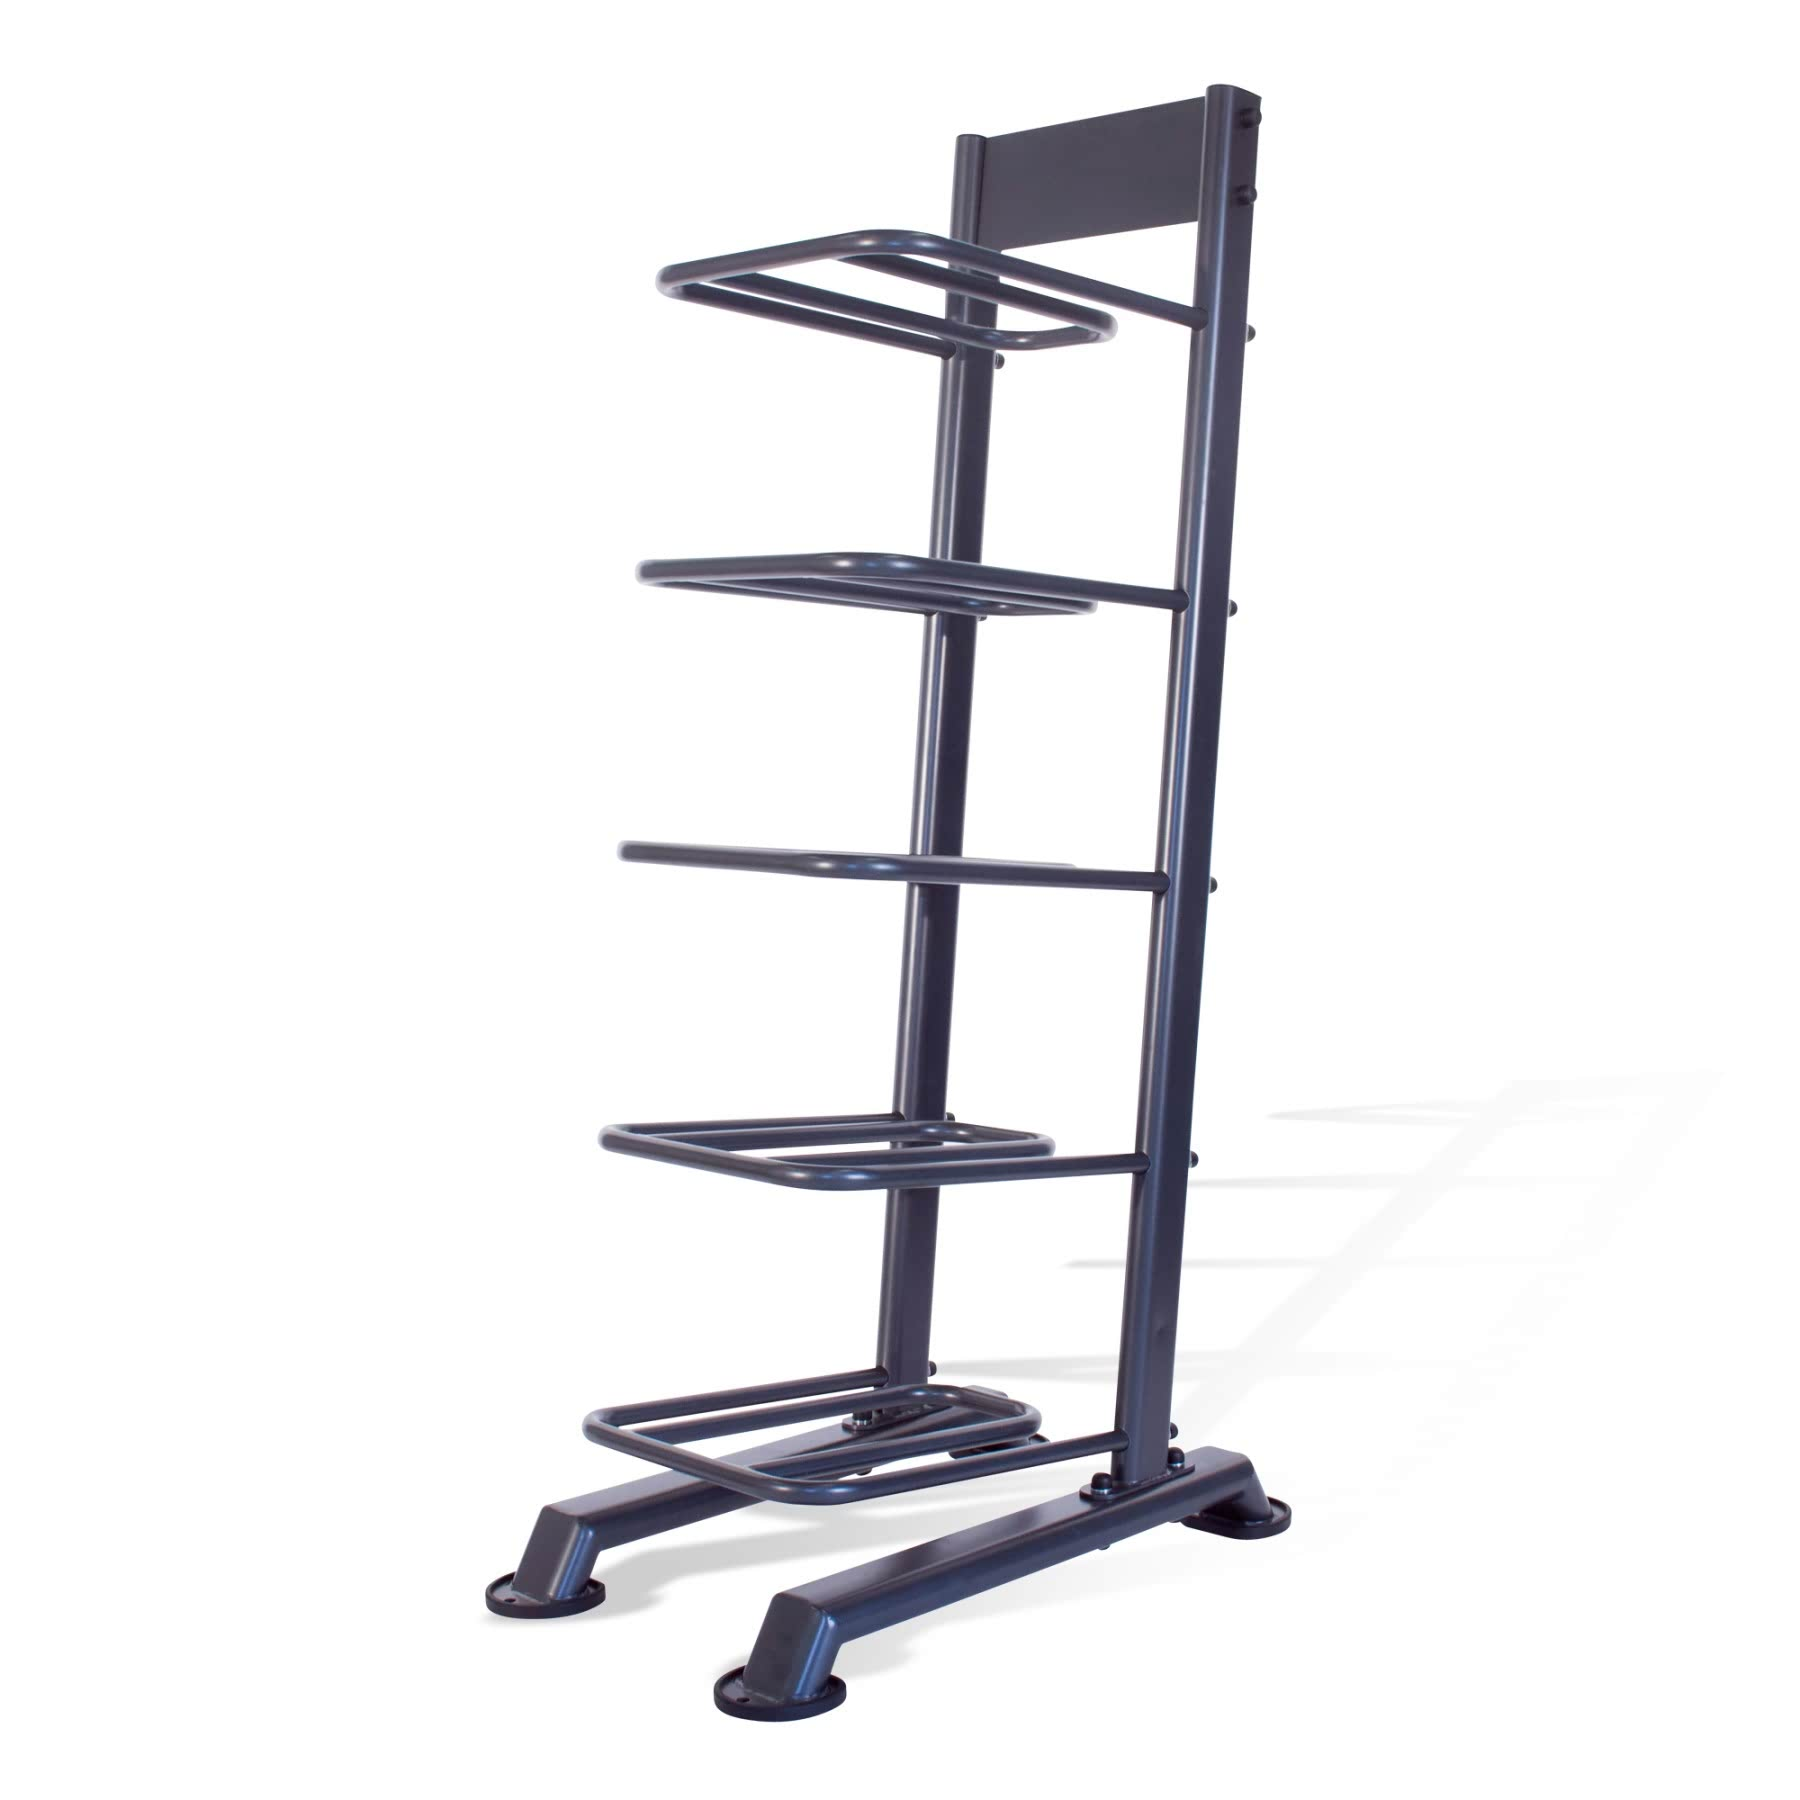 drying furniture shelf cm upright products spr systems white wall en gb shelves ikea rack storage algot